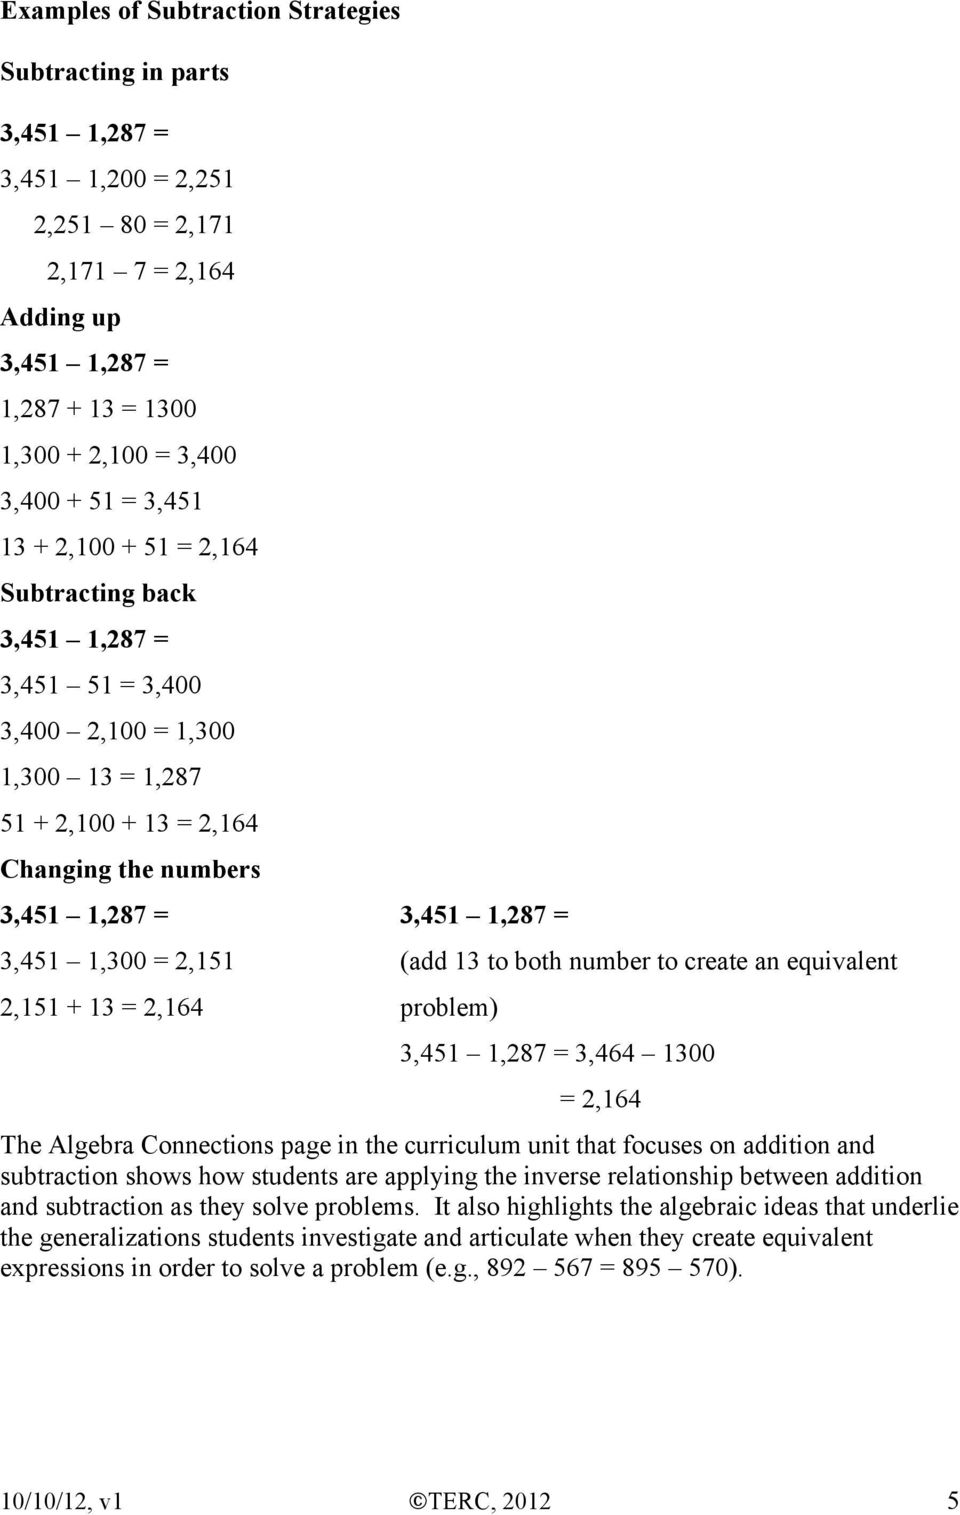 = 2,151 (add 13 to both number to create an equivalent 2,151 + 13 = 2,164 problem) 3,451 1,287 = 3,464 1300 = 2,164 The Algebra Connections page in the curriculum unit that focuses on addition and